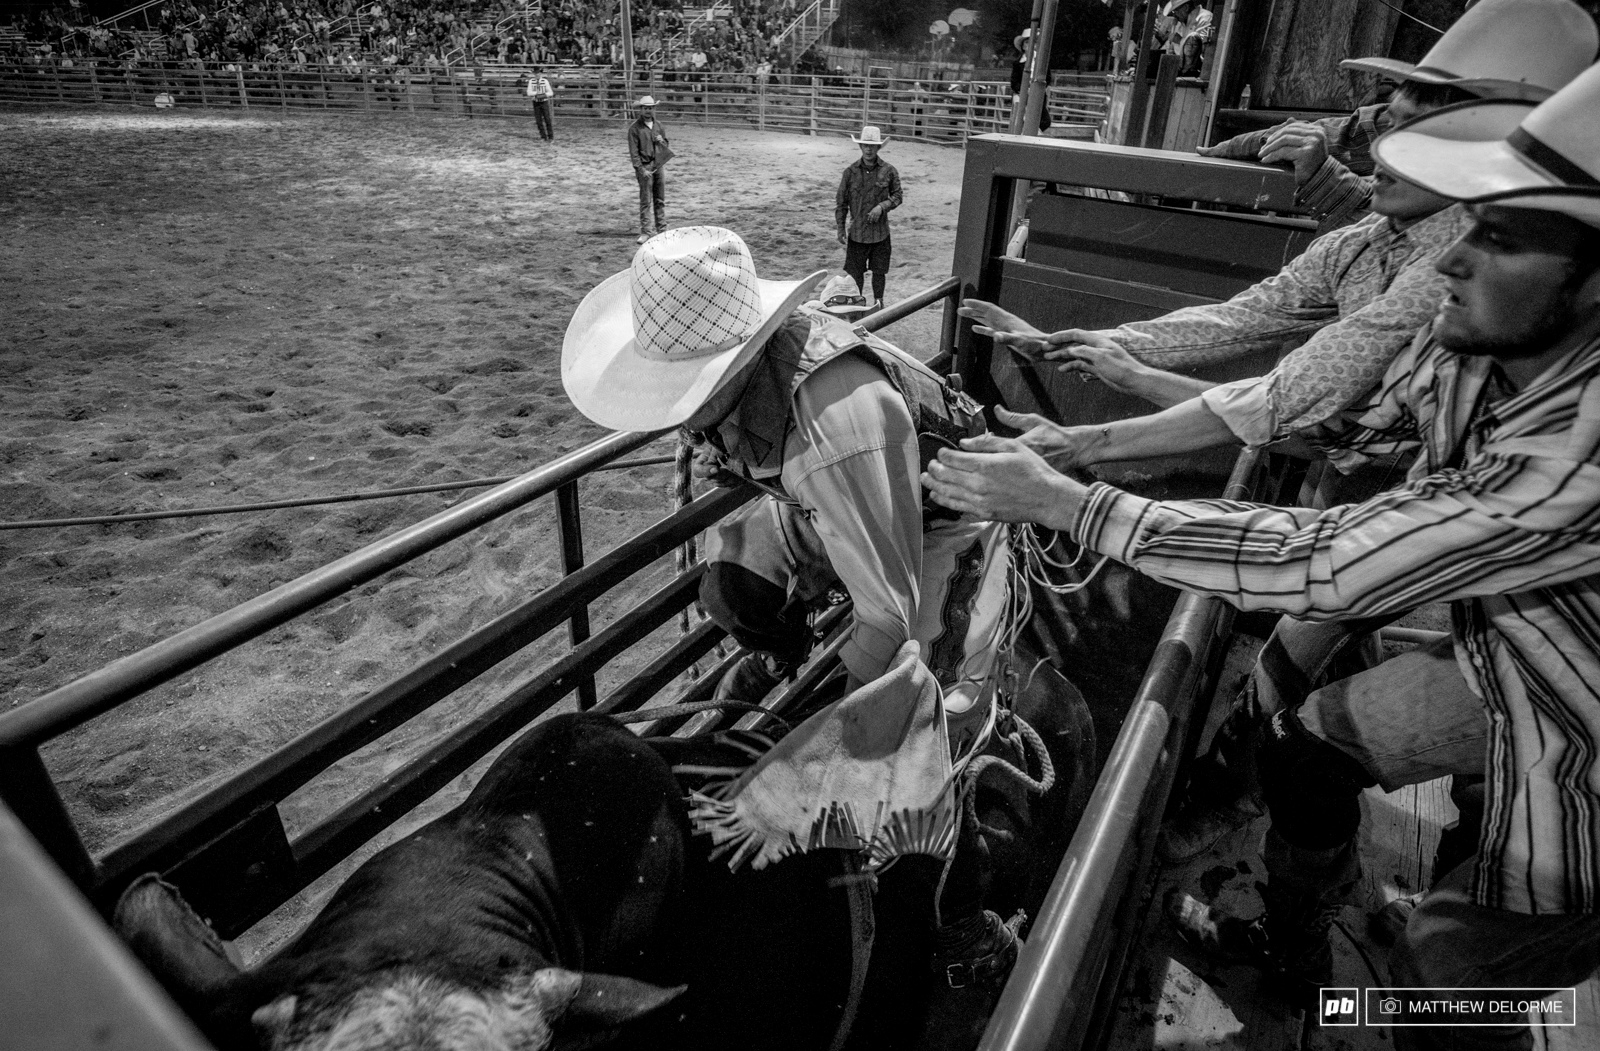 Loading onto the back of a pissed off bull is no easy task.